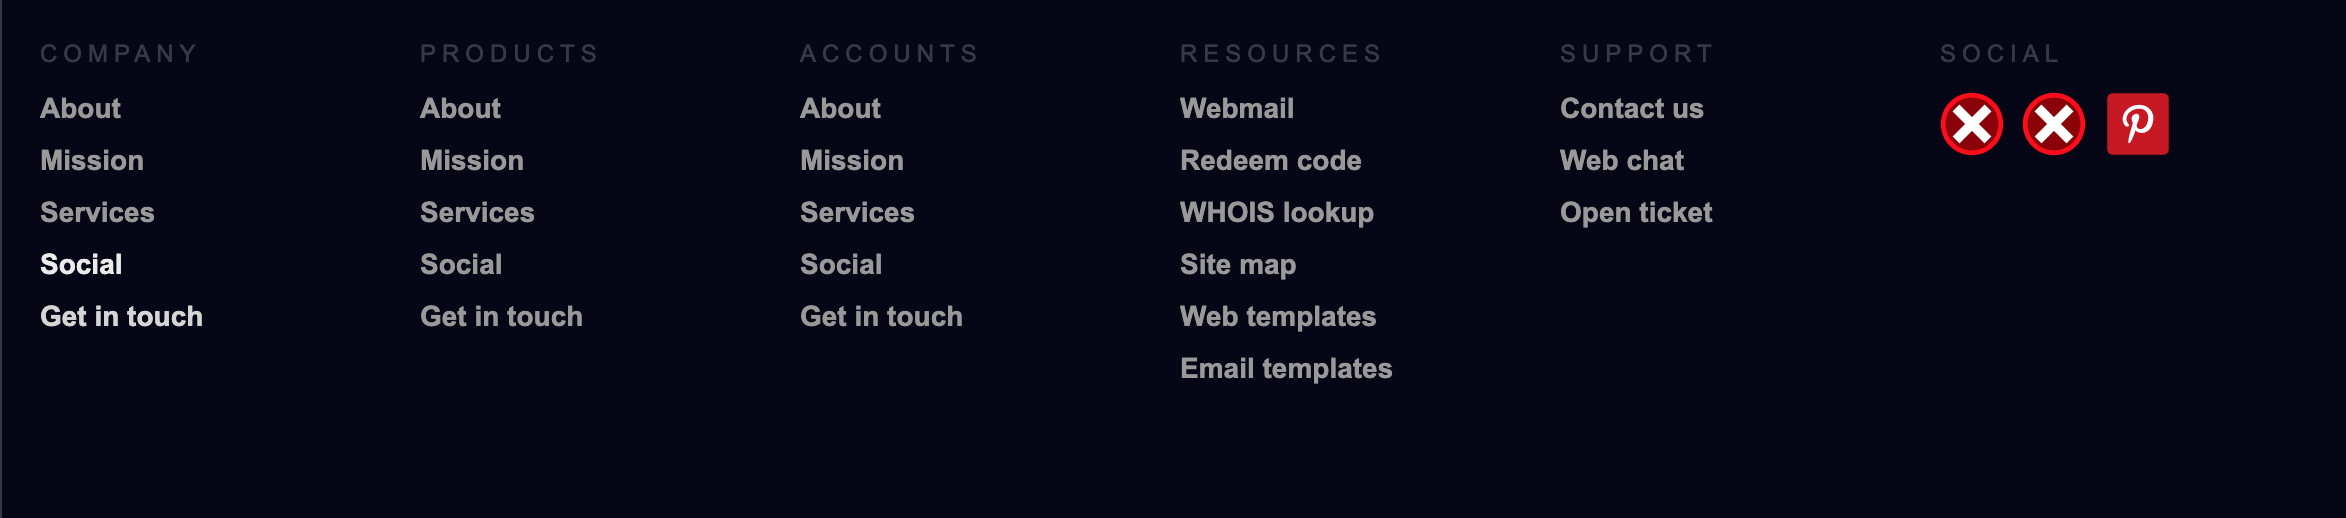 HTML CSS Mobile Responsive Footer